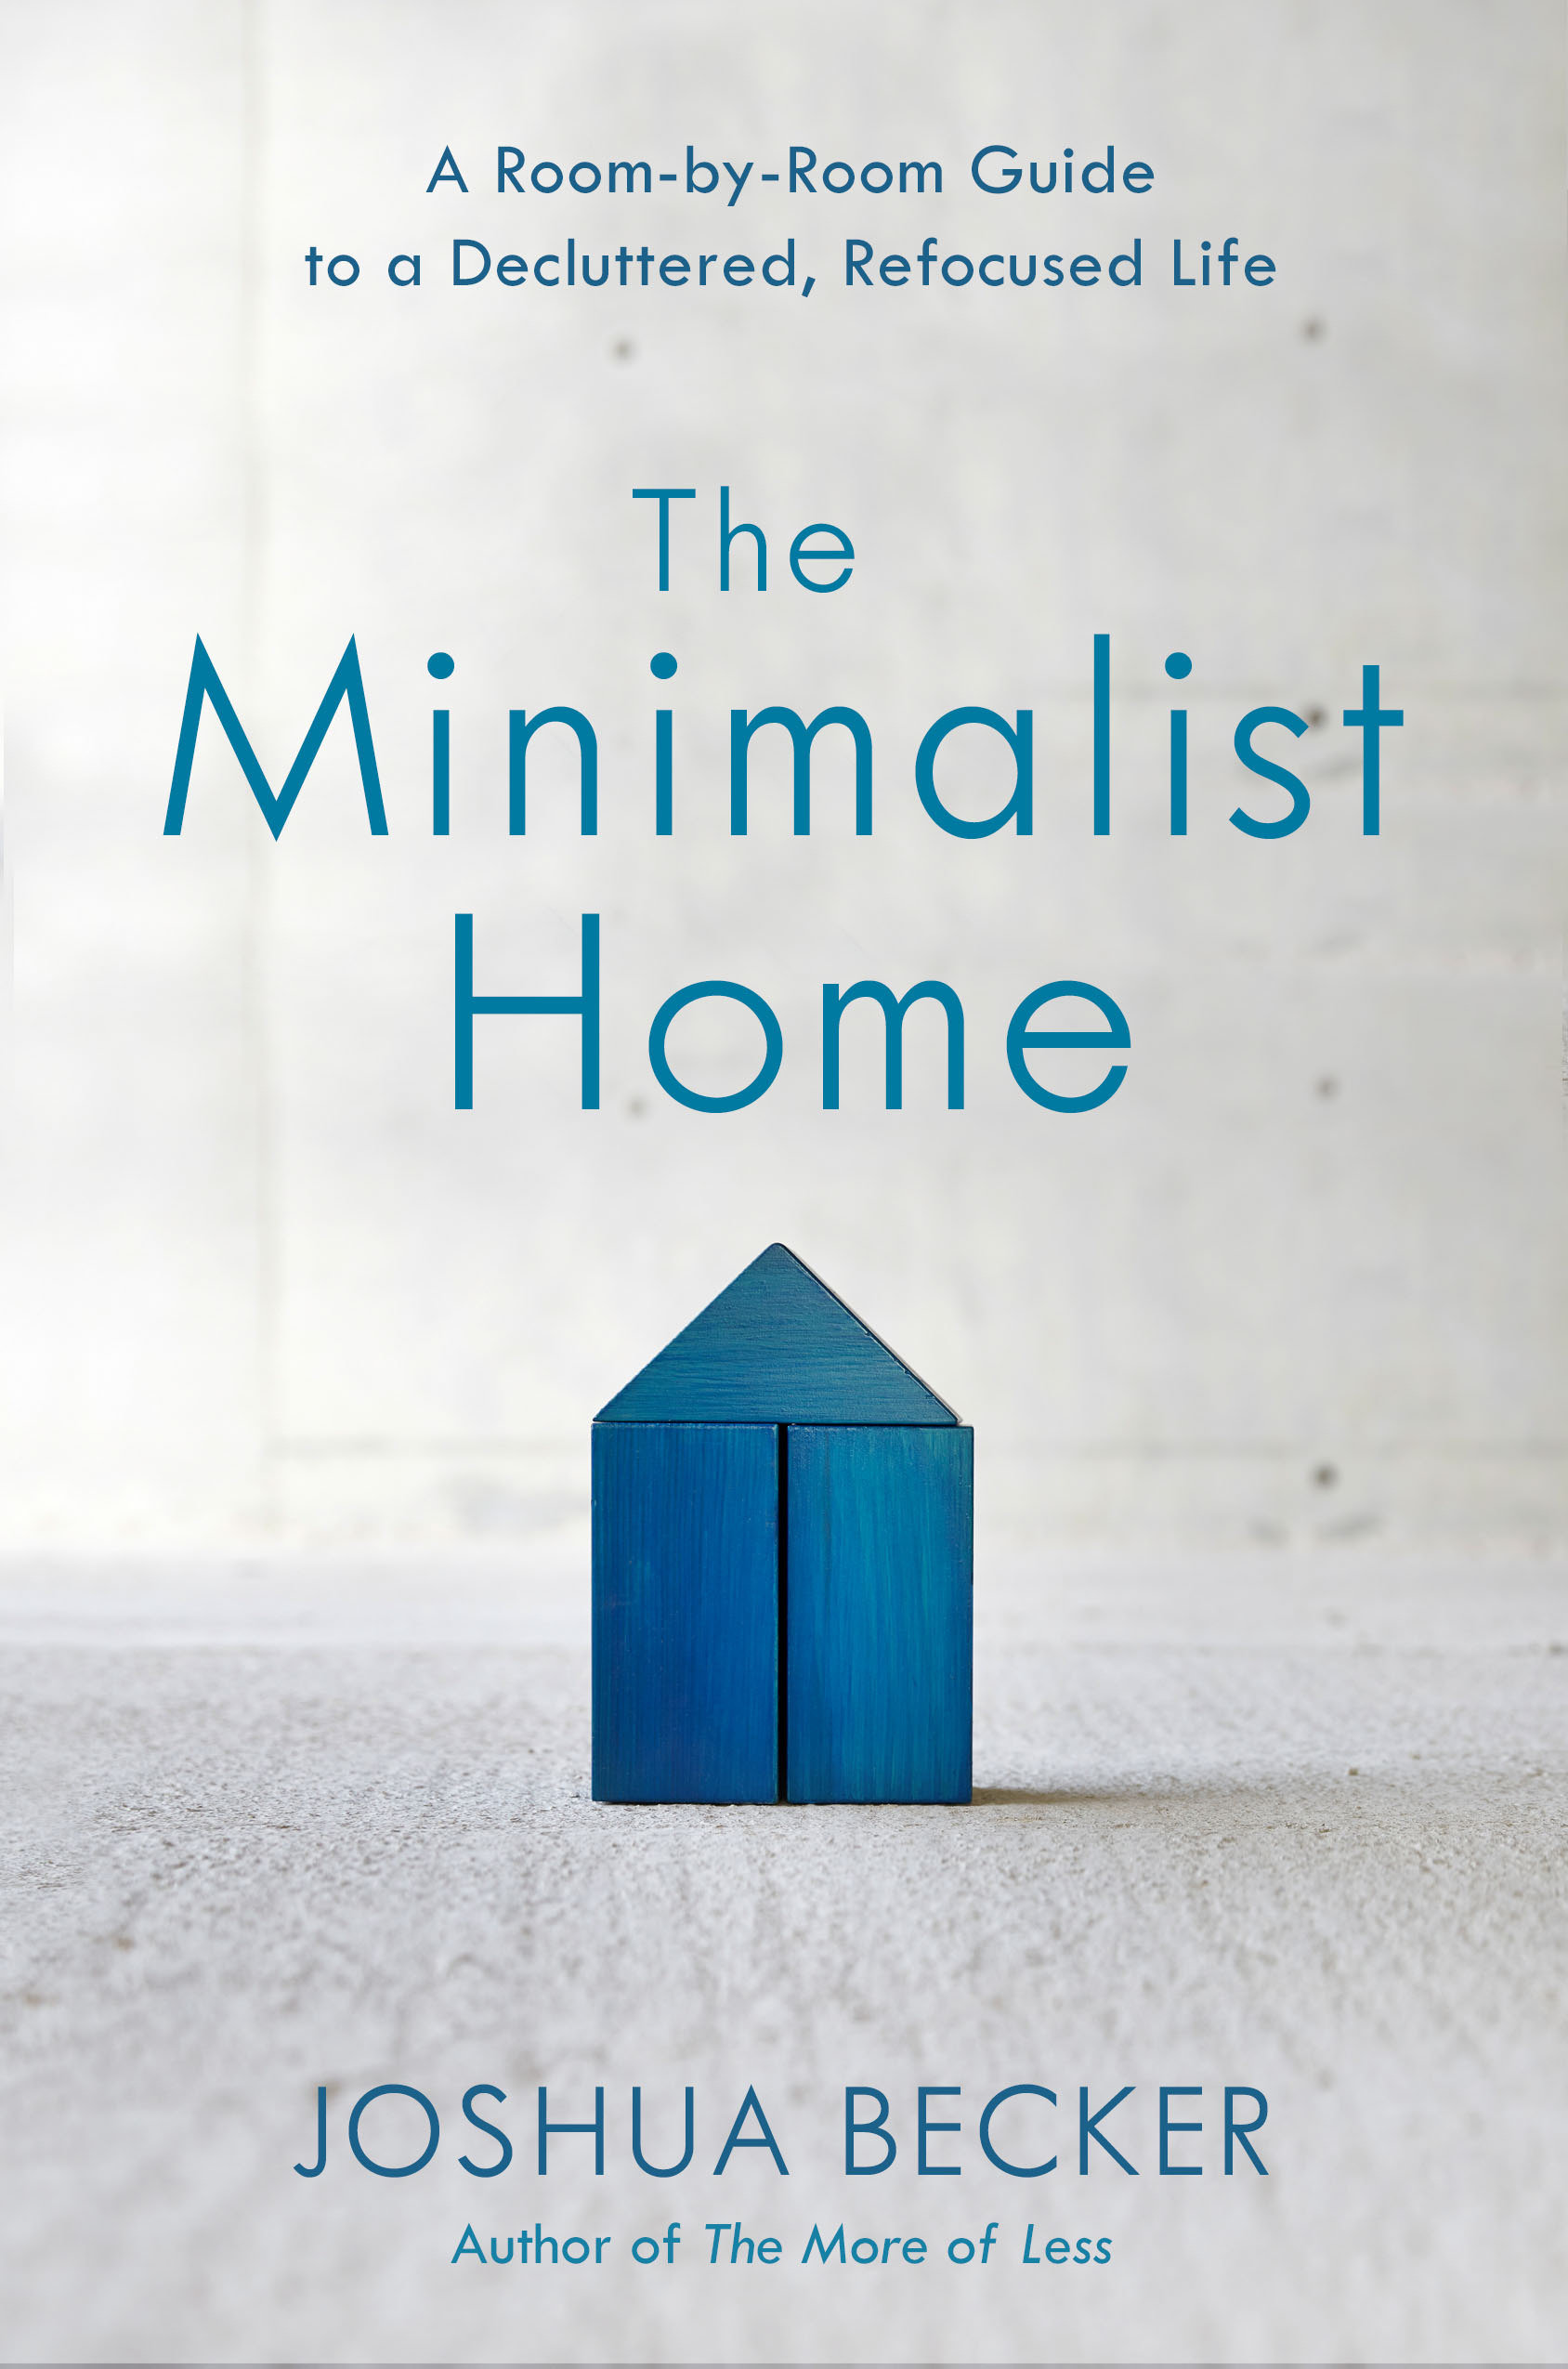 The minimalist home a room-by-room guide to a decluttered, refocused life cover image